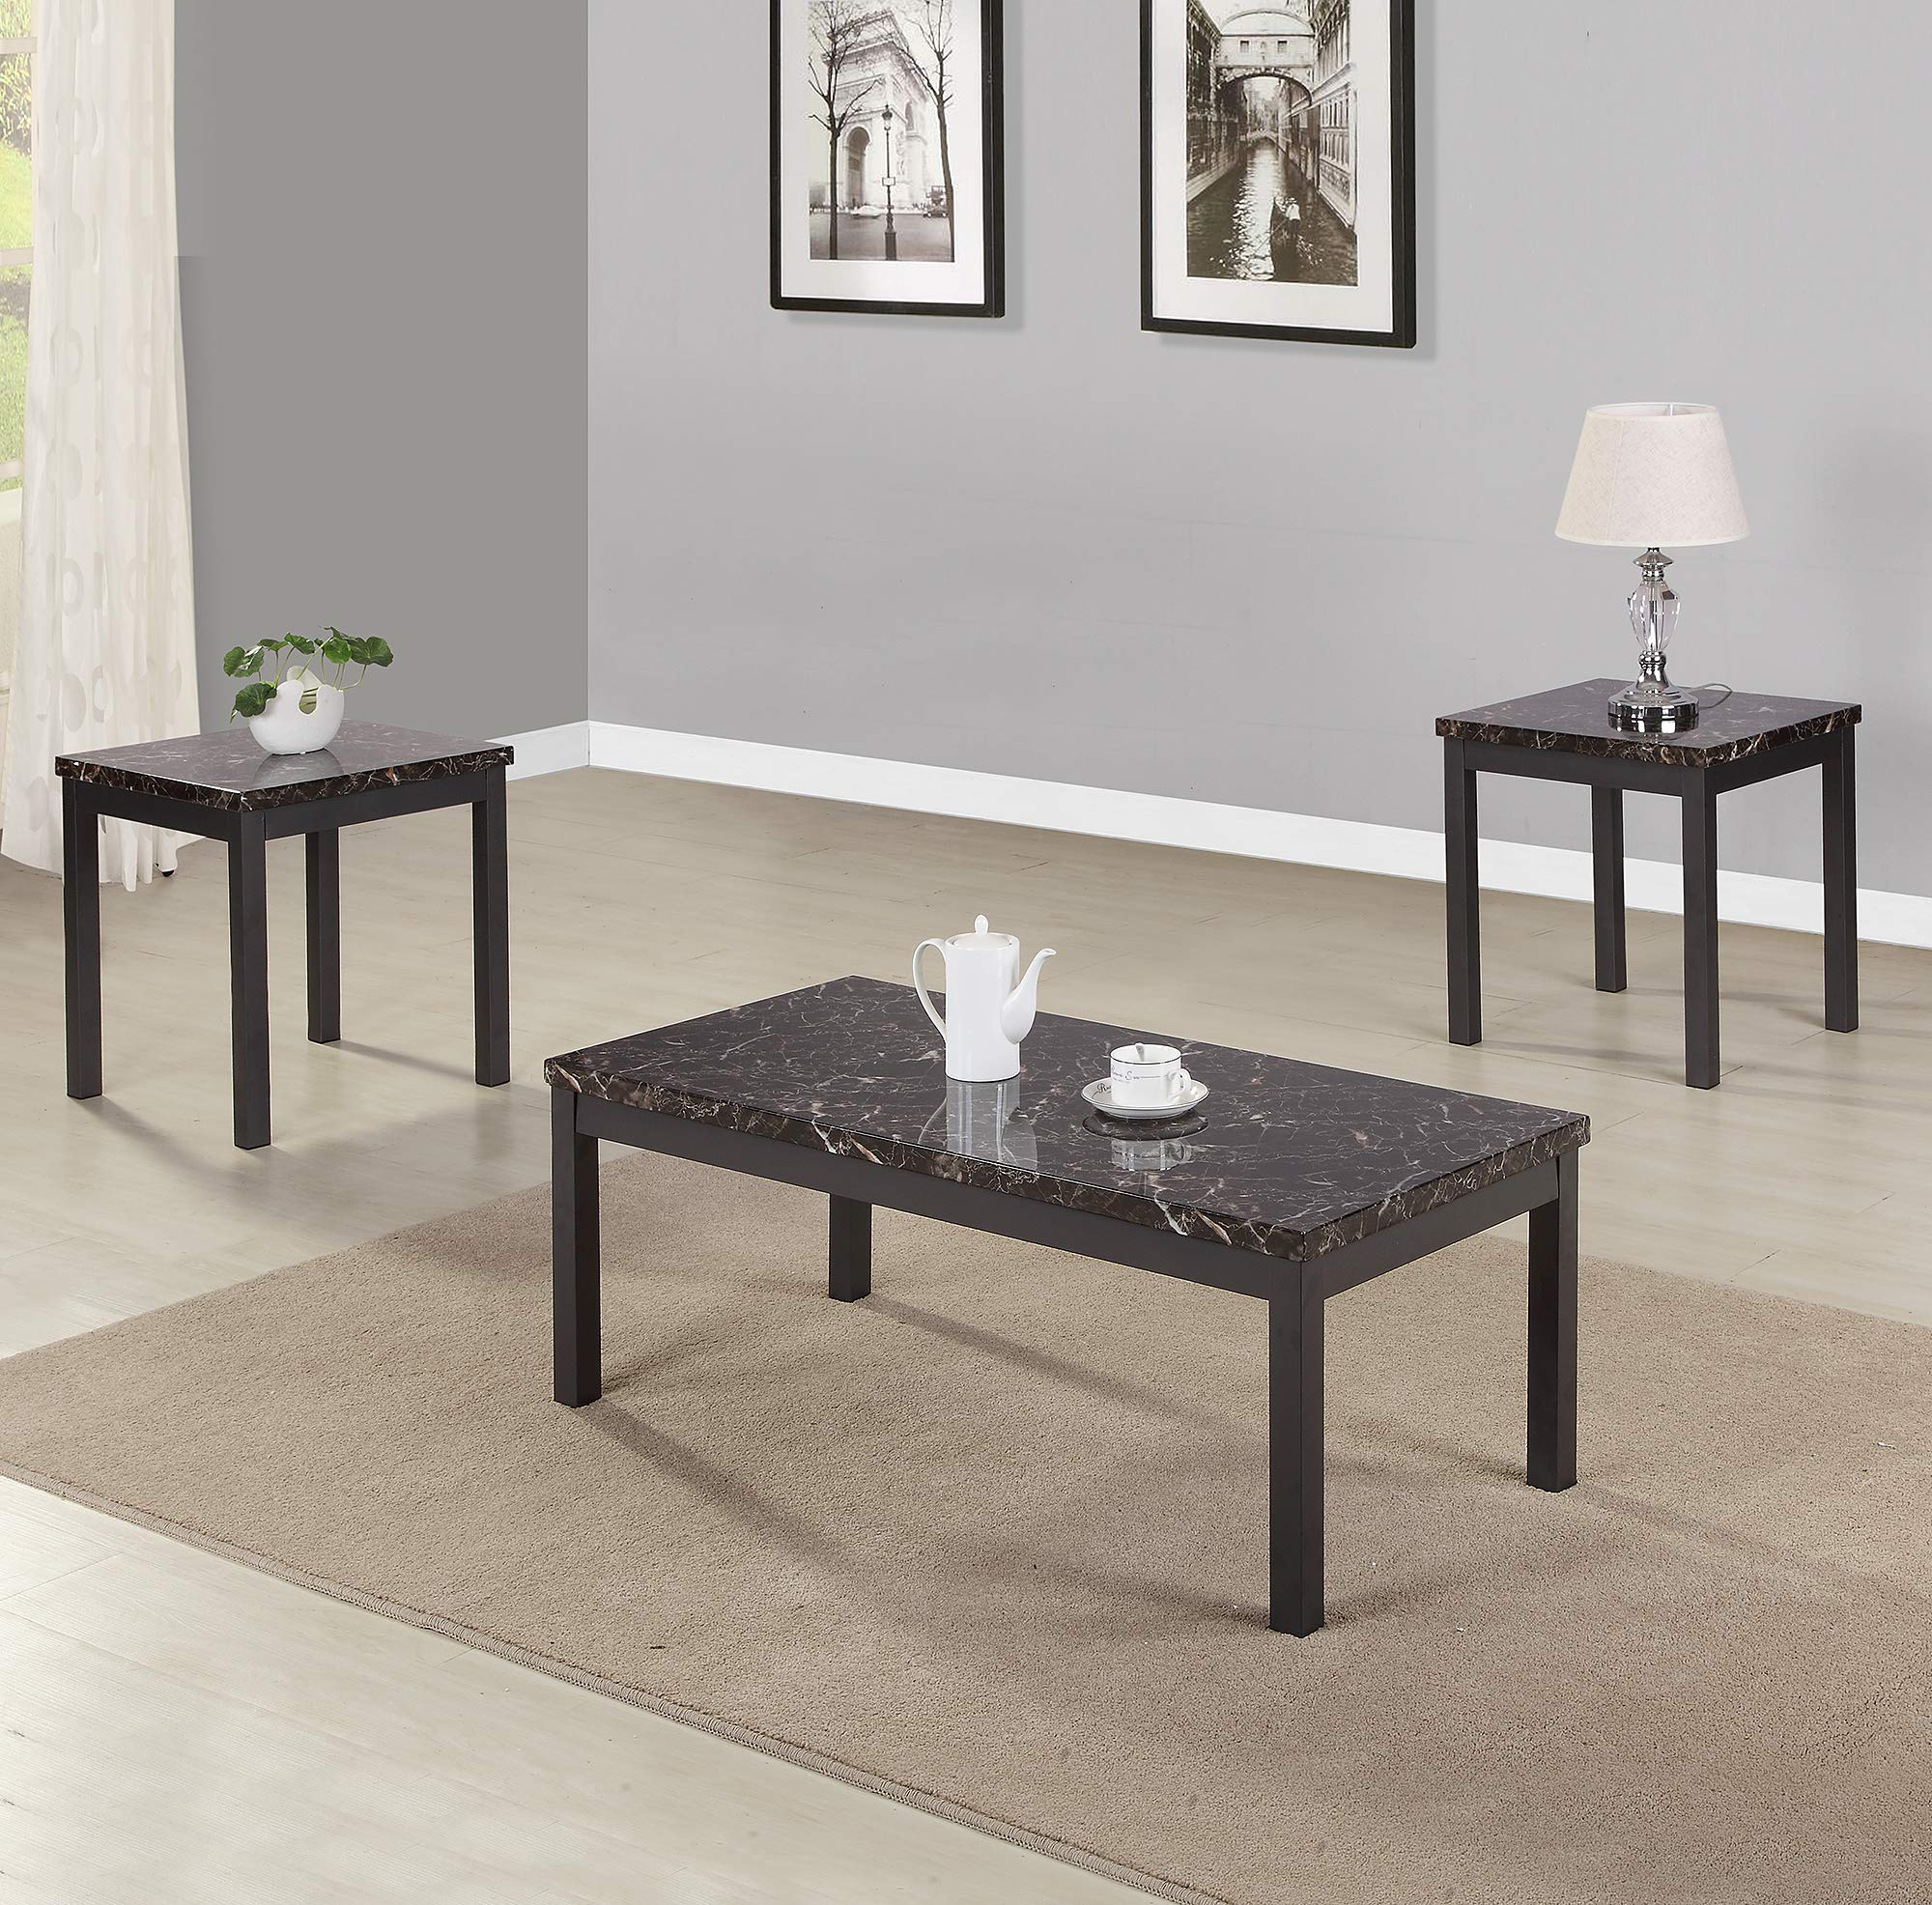 EiioX Faux Marble Coffee 3 Piece Modern End Table and Cocktail Desk Set with Metal Legs and Apron Living Room Furniture, Black by EiioX